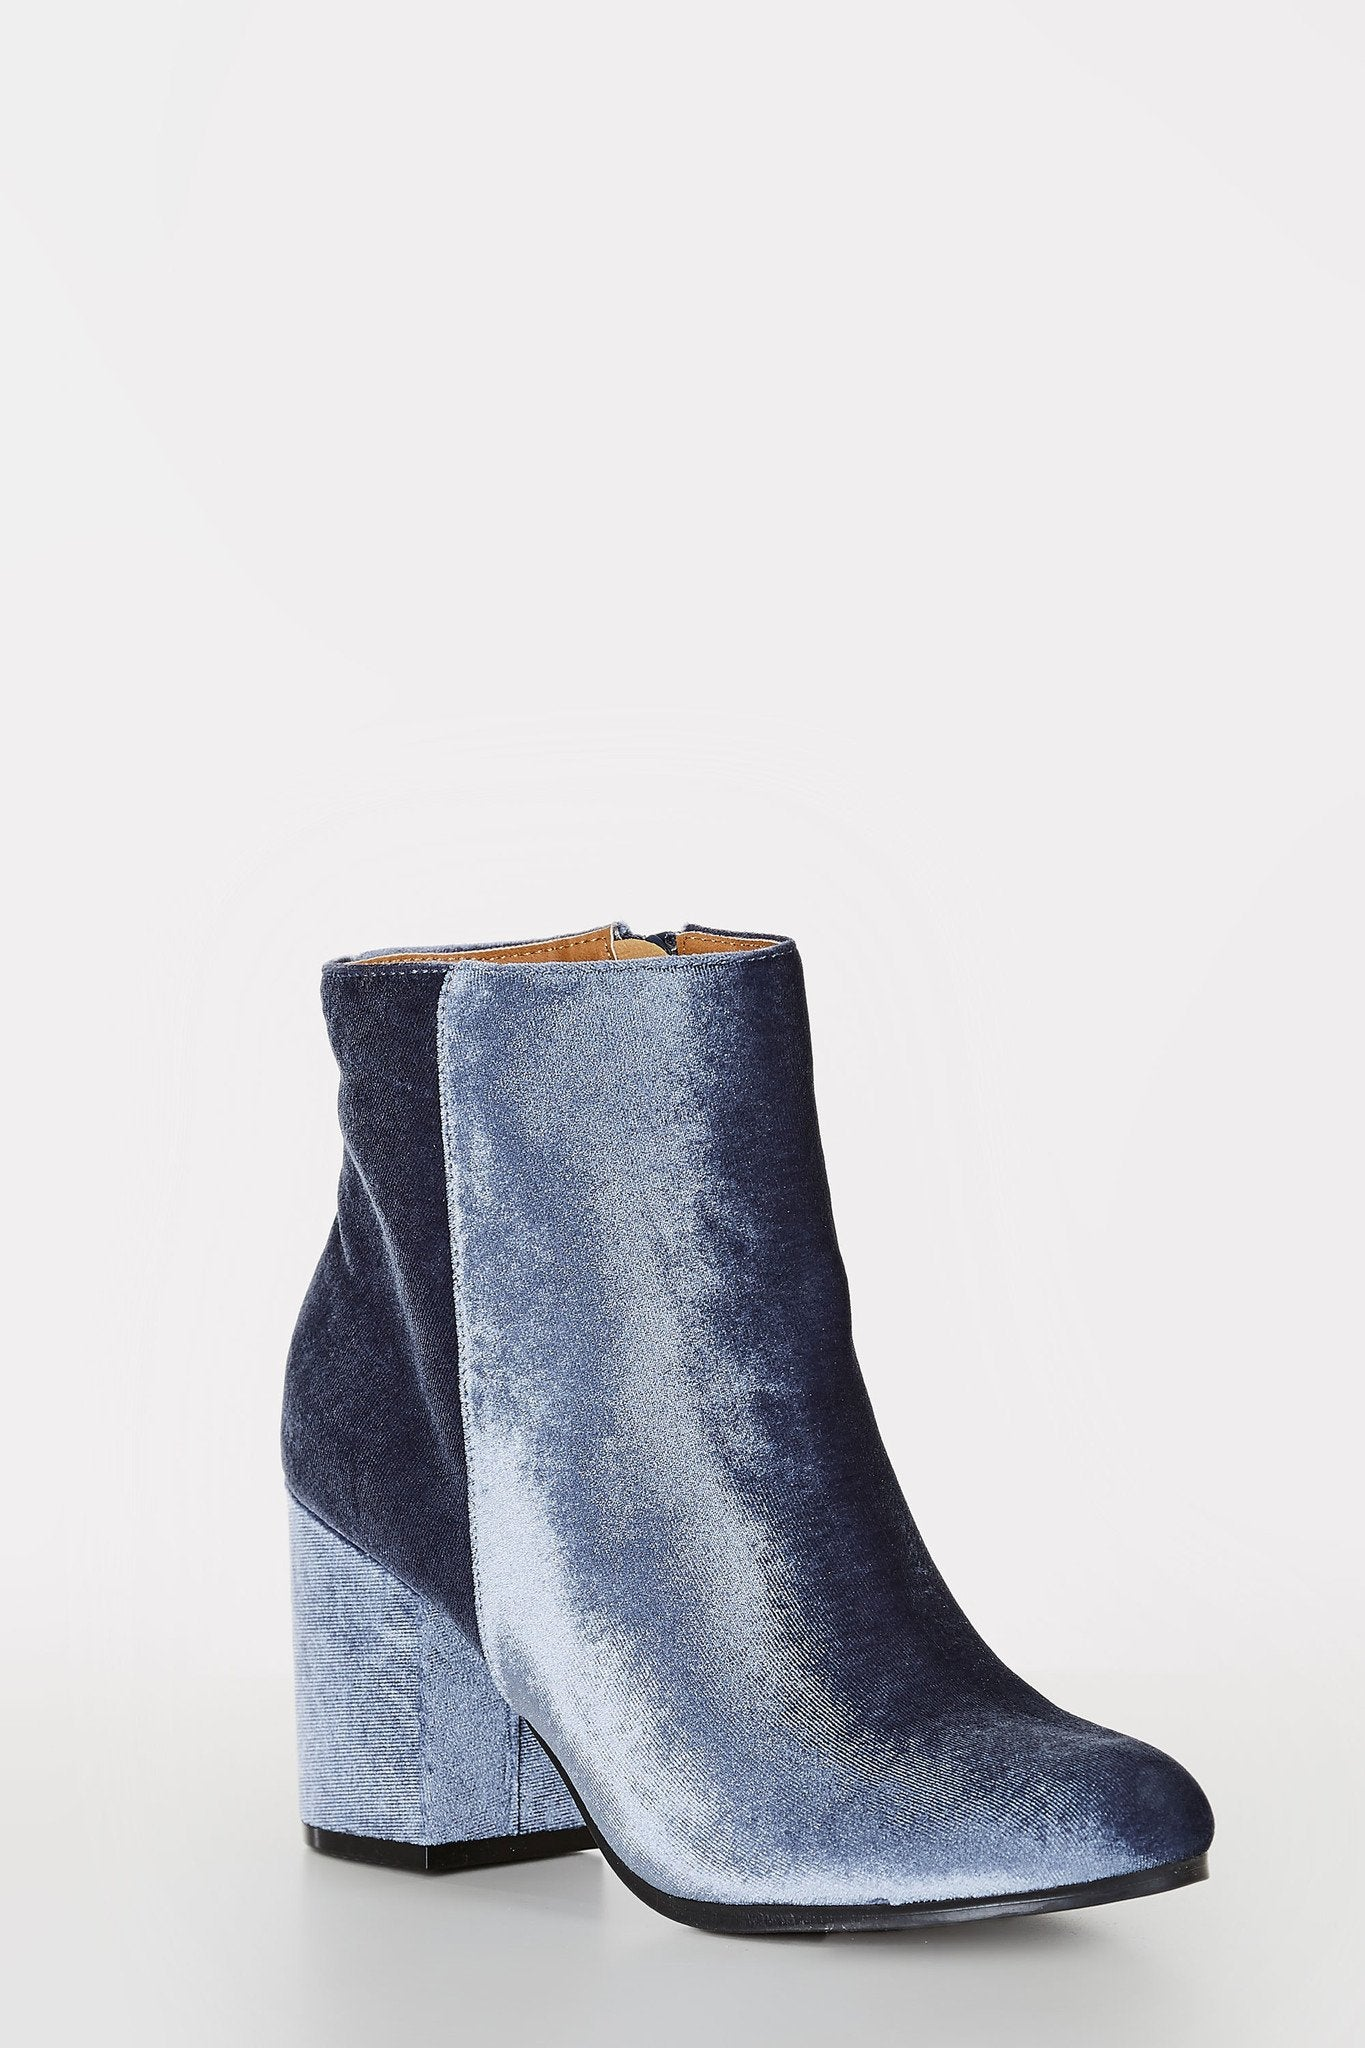 Velvet ankle boots with soft rounded toe. Side zip closure with chunky block heels.